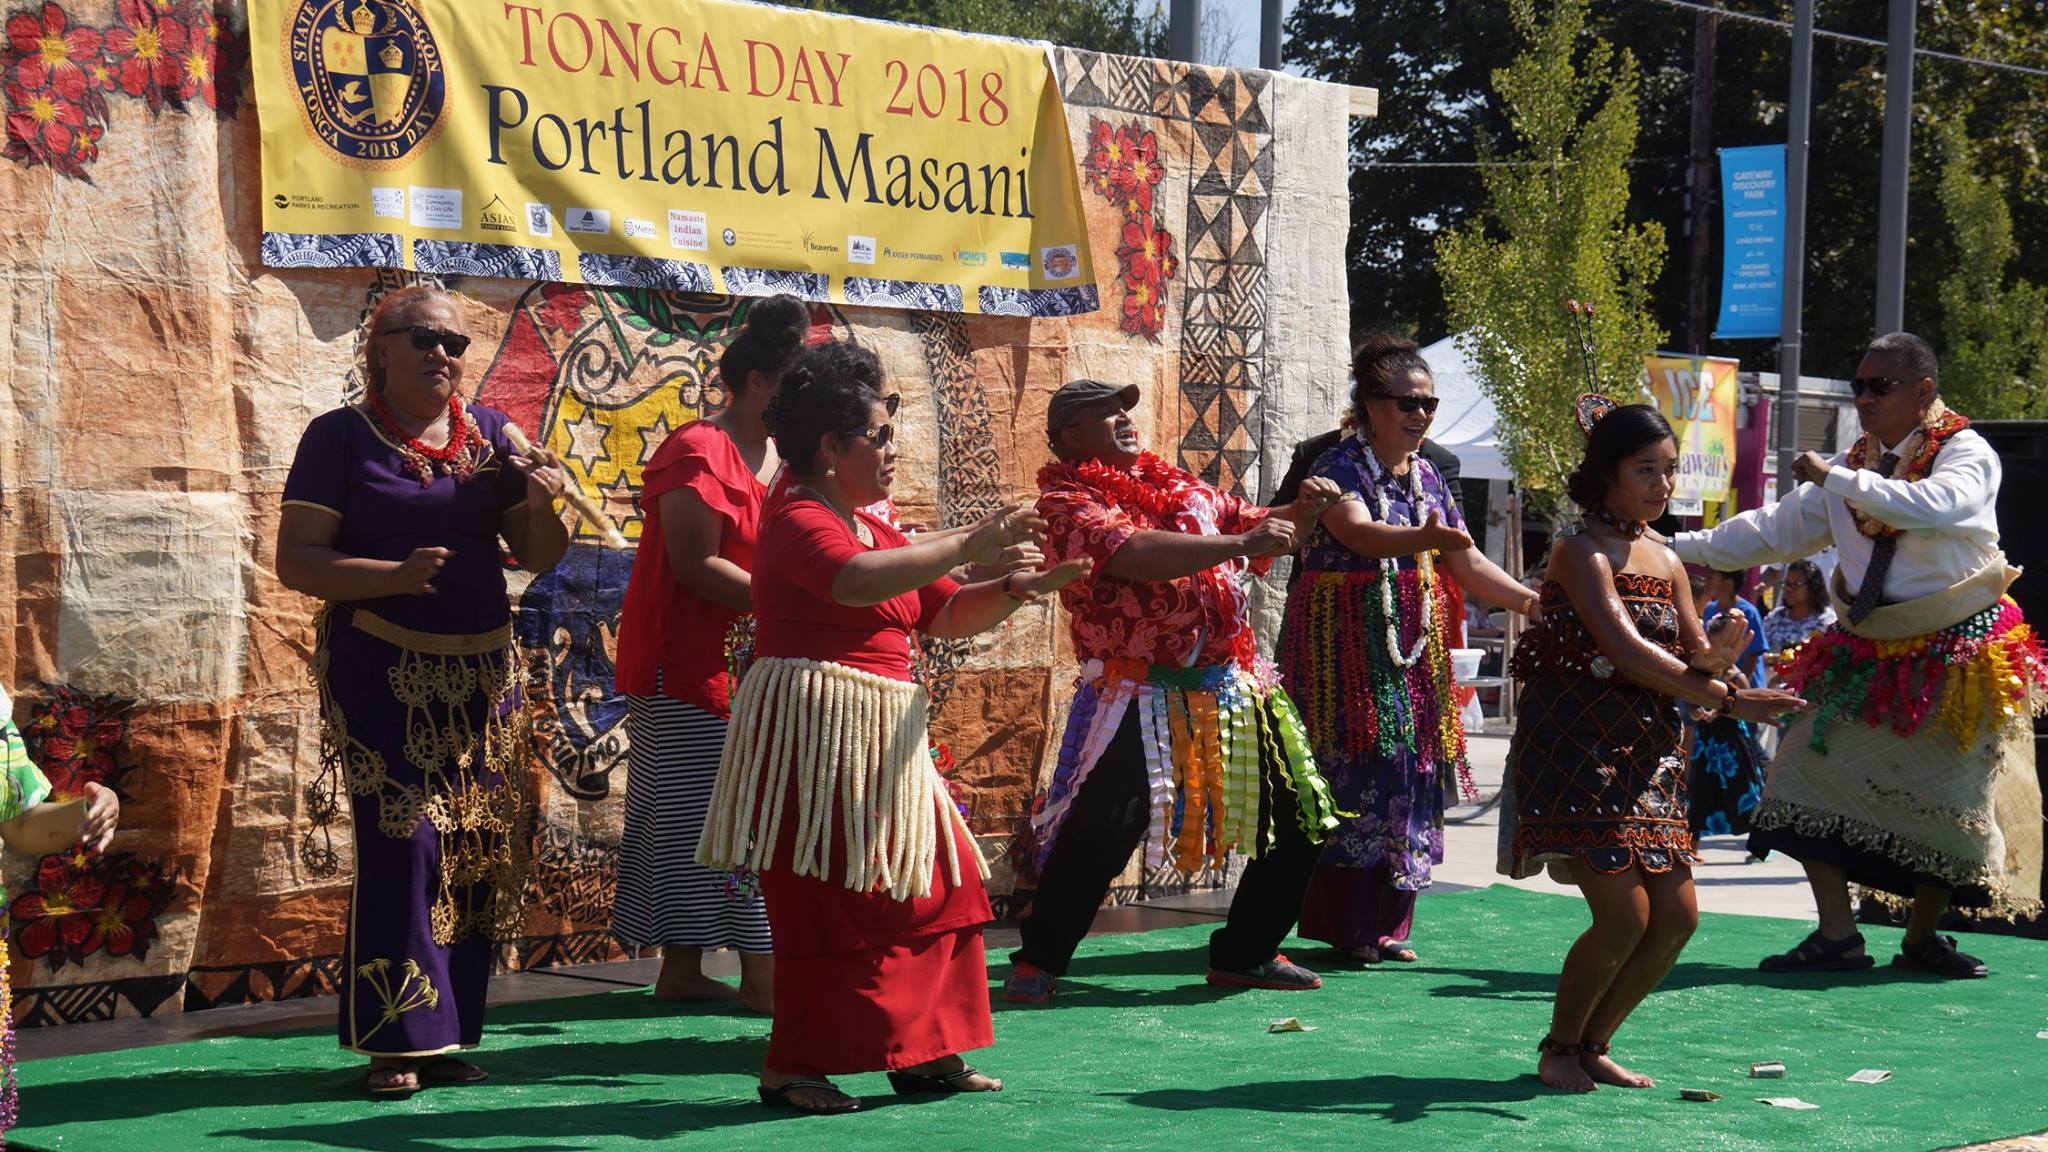 Tonga Day - August 18, 2018 at Discovery Park. Click here for photos.